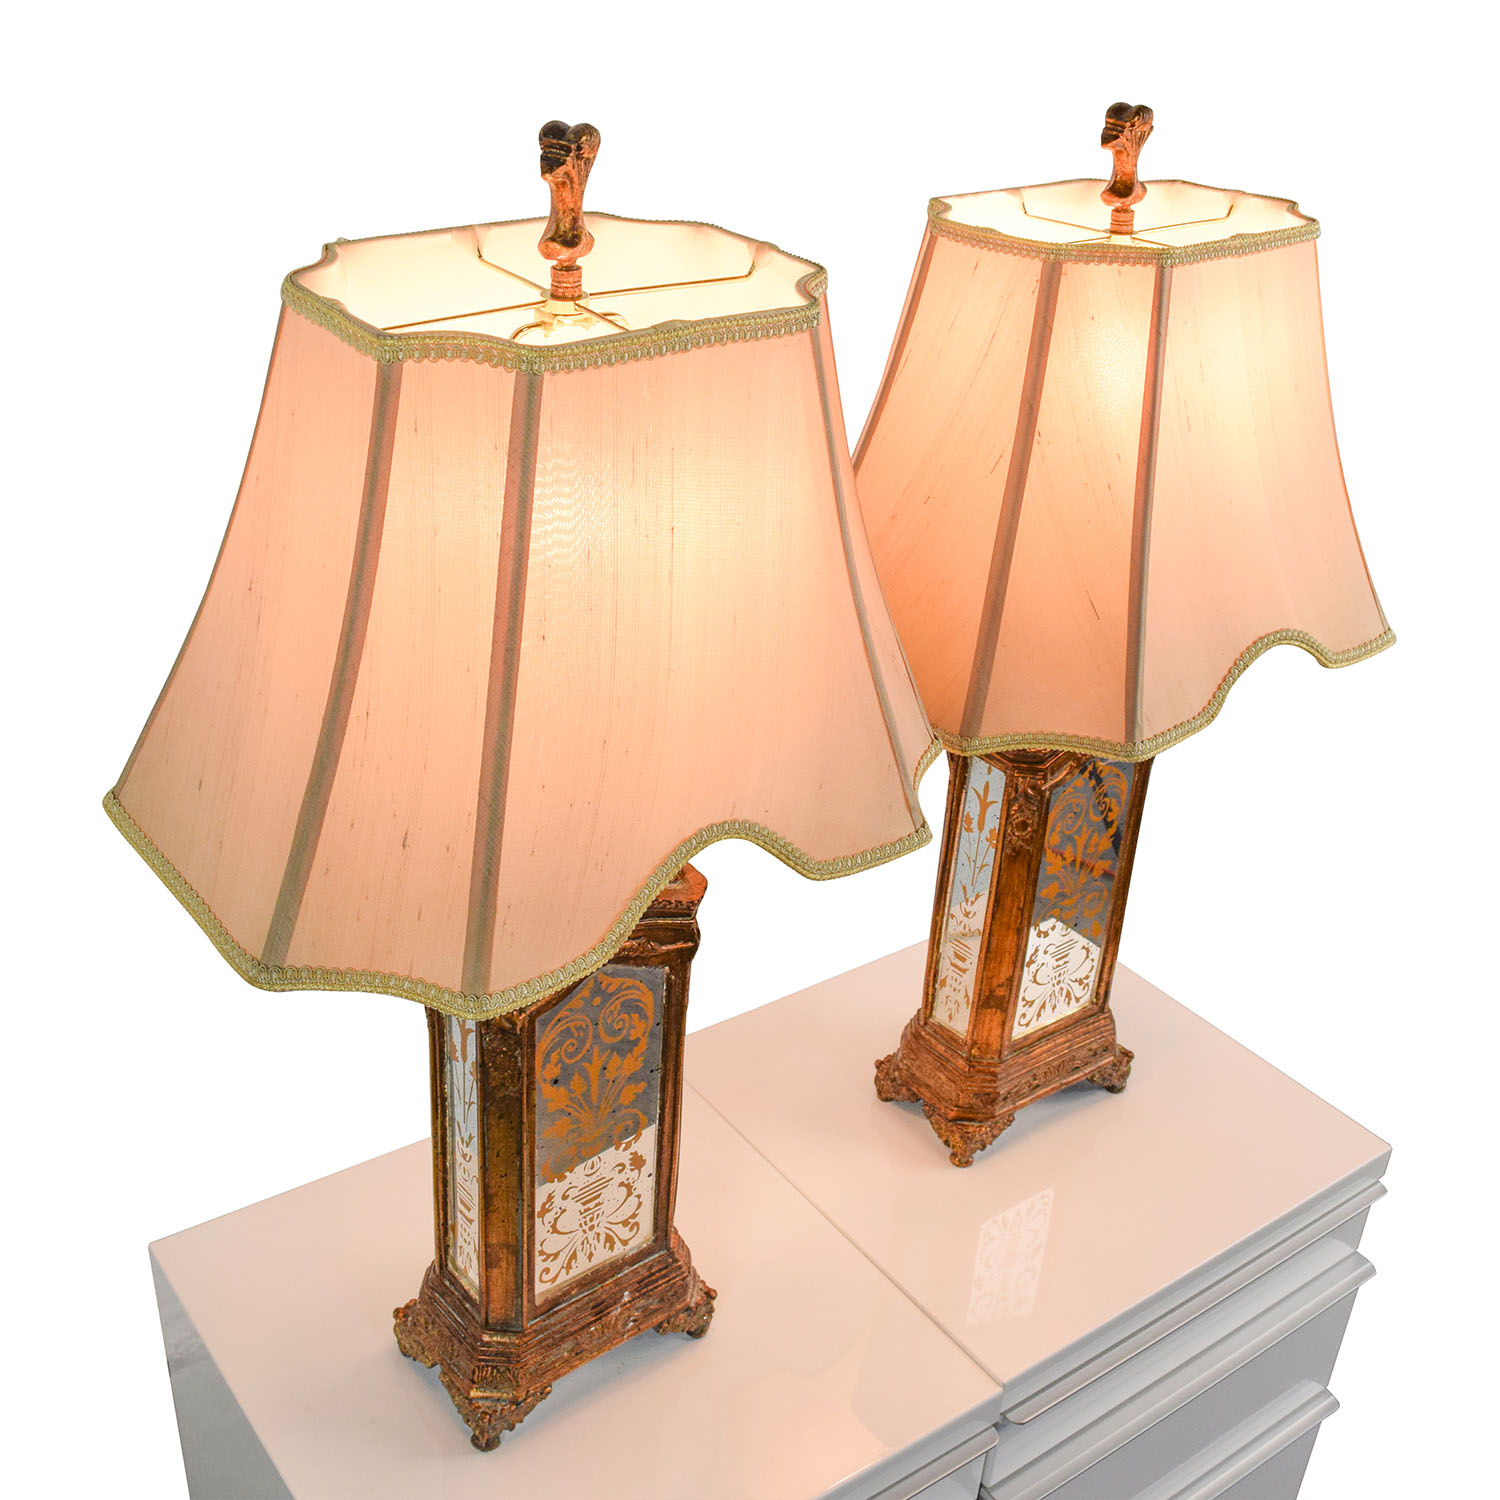 76 off horchow horchow hand painted table lamps decor buy horchow hand painted table lamps horchow lamps geotapseo Gallery